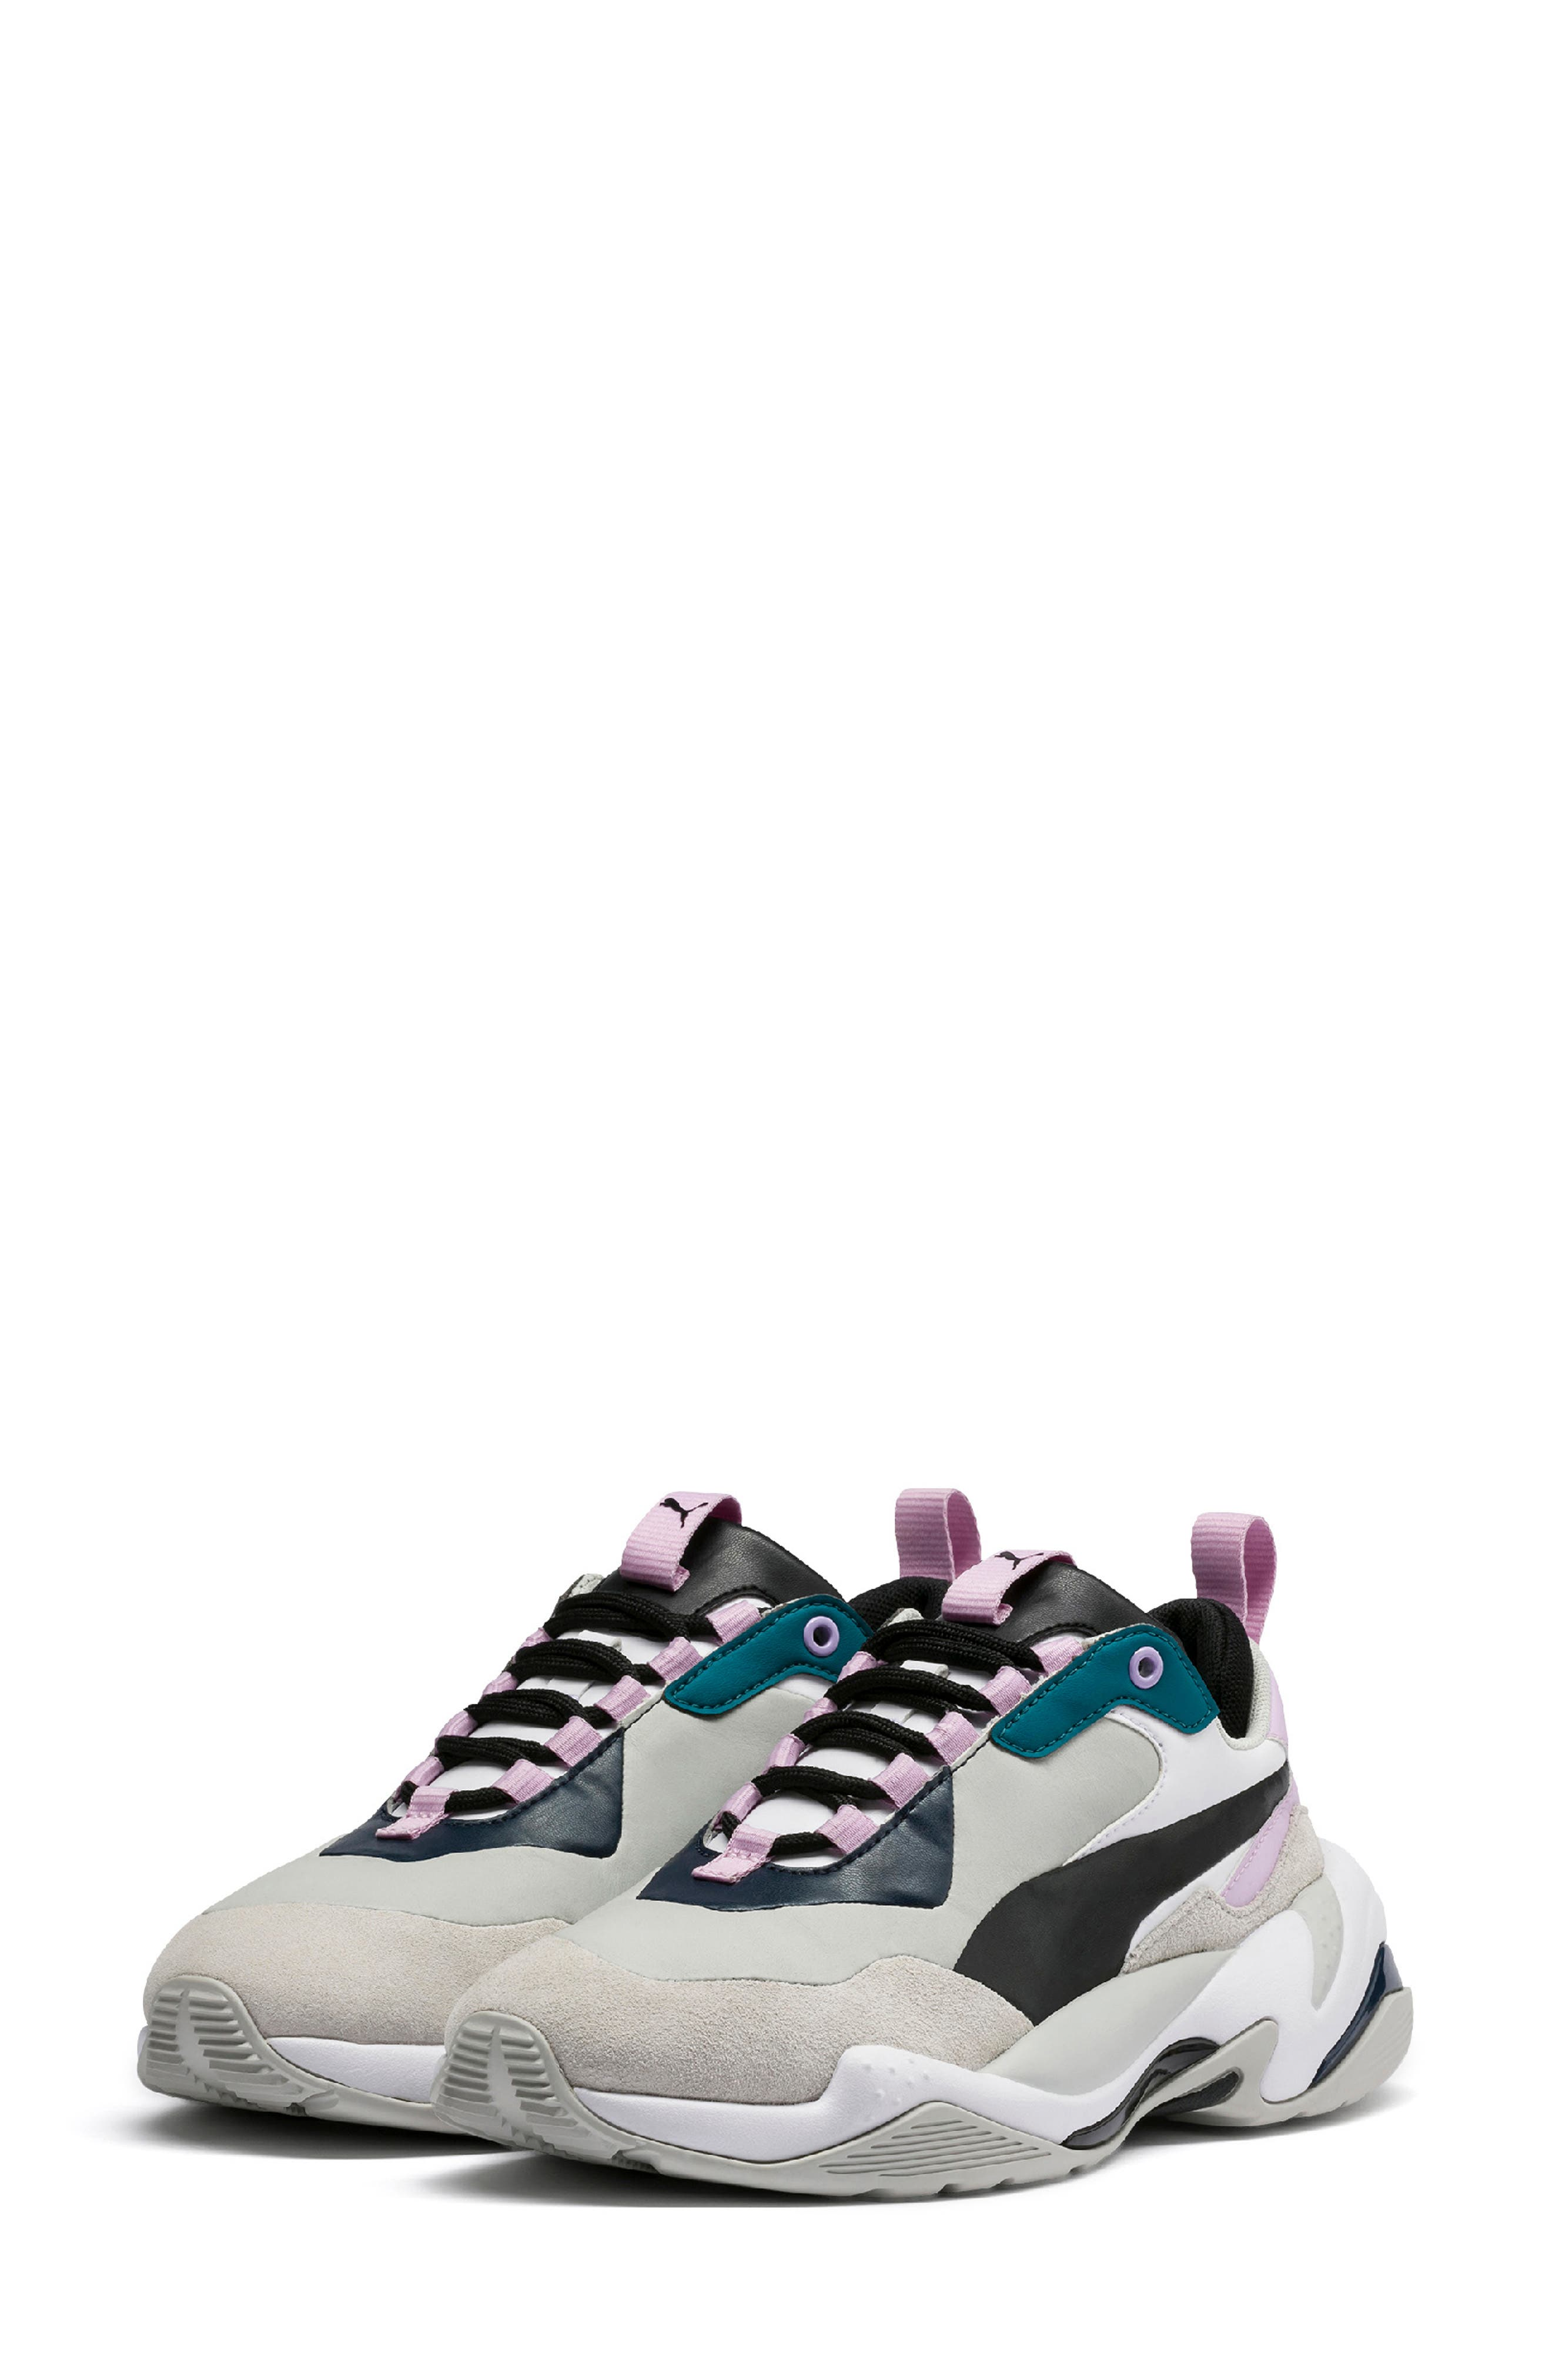 PUMA, Thunder Electric Sneaker, Main thumbnail 1, color, DEEP LAGOON/ ORCHID BLOOM